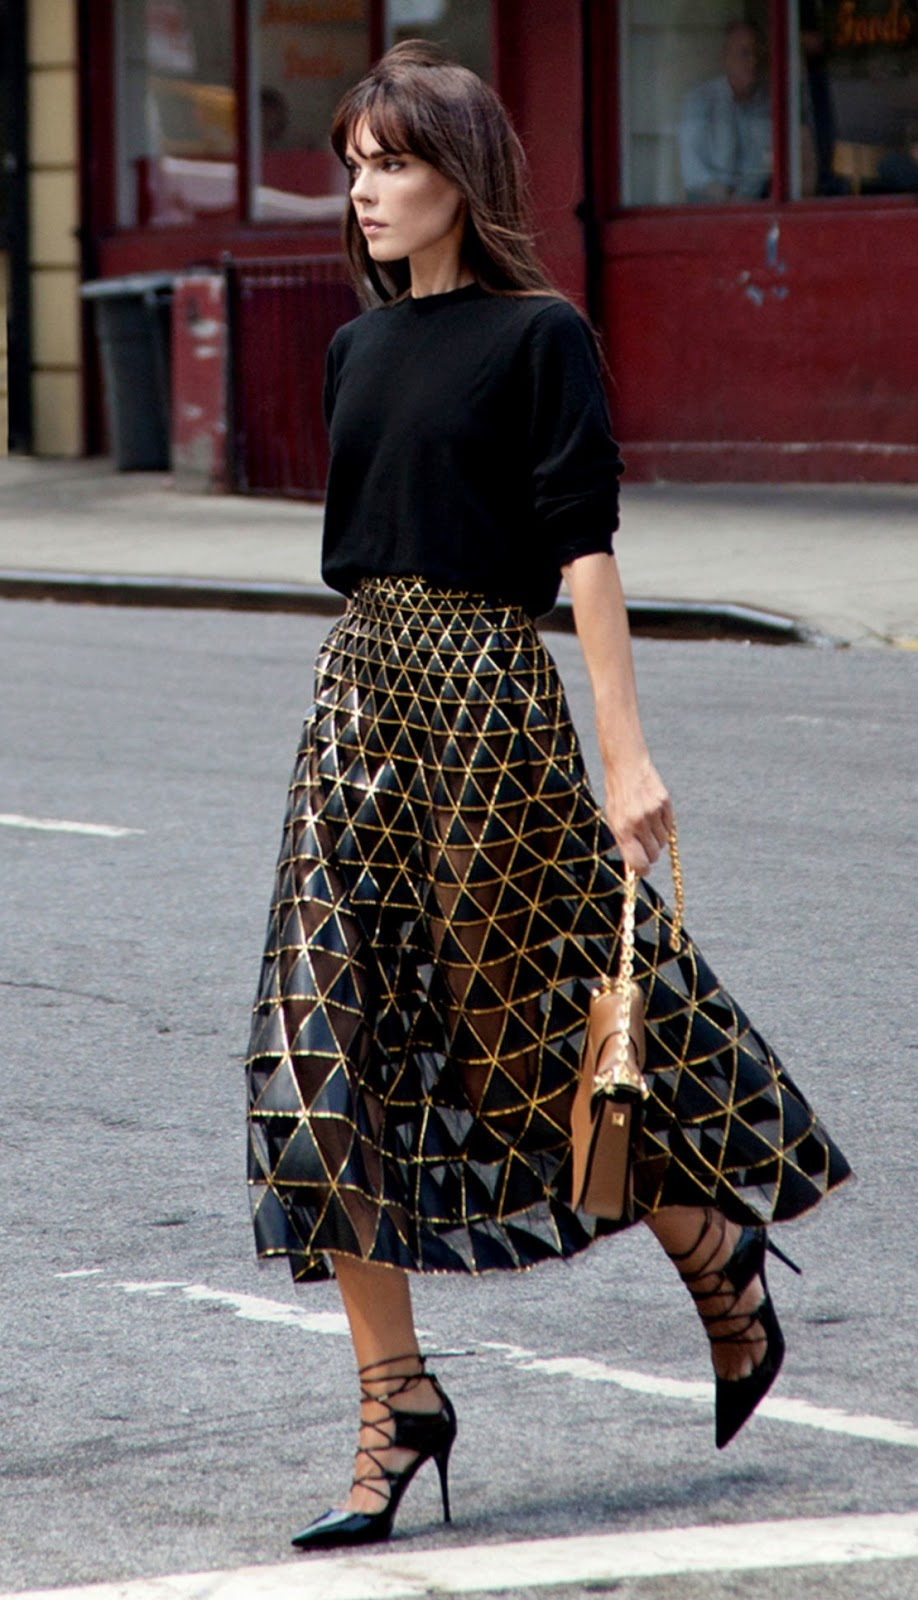 fashion trends / black top + midi skirt + bag + heels